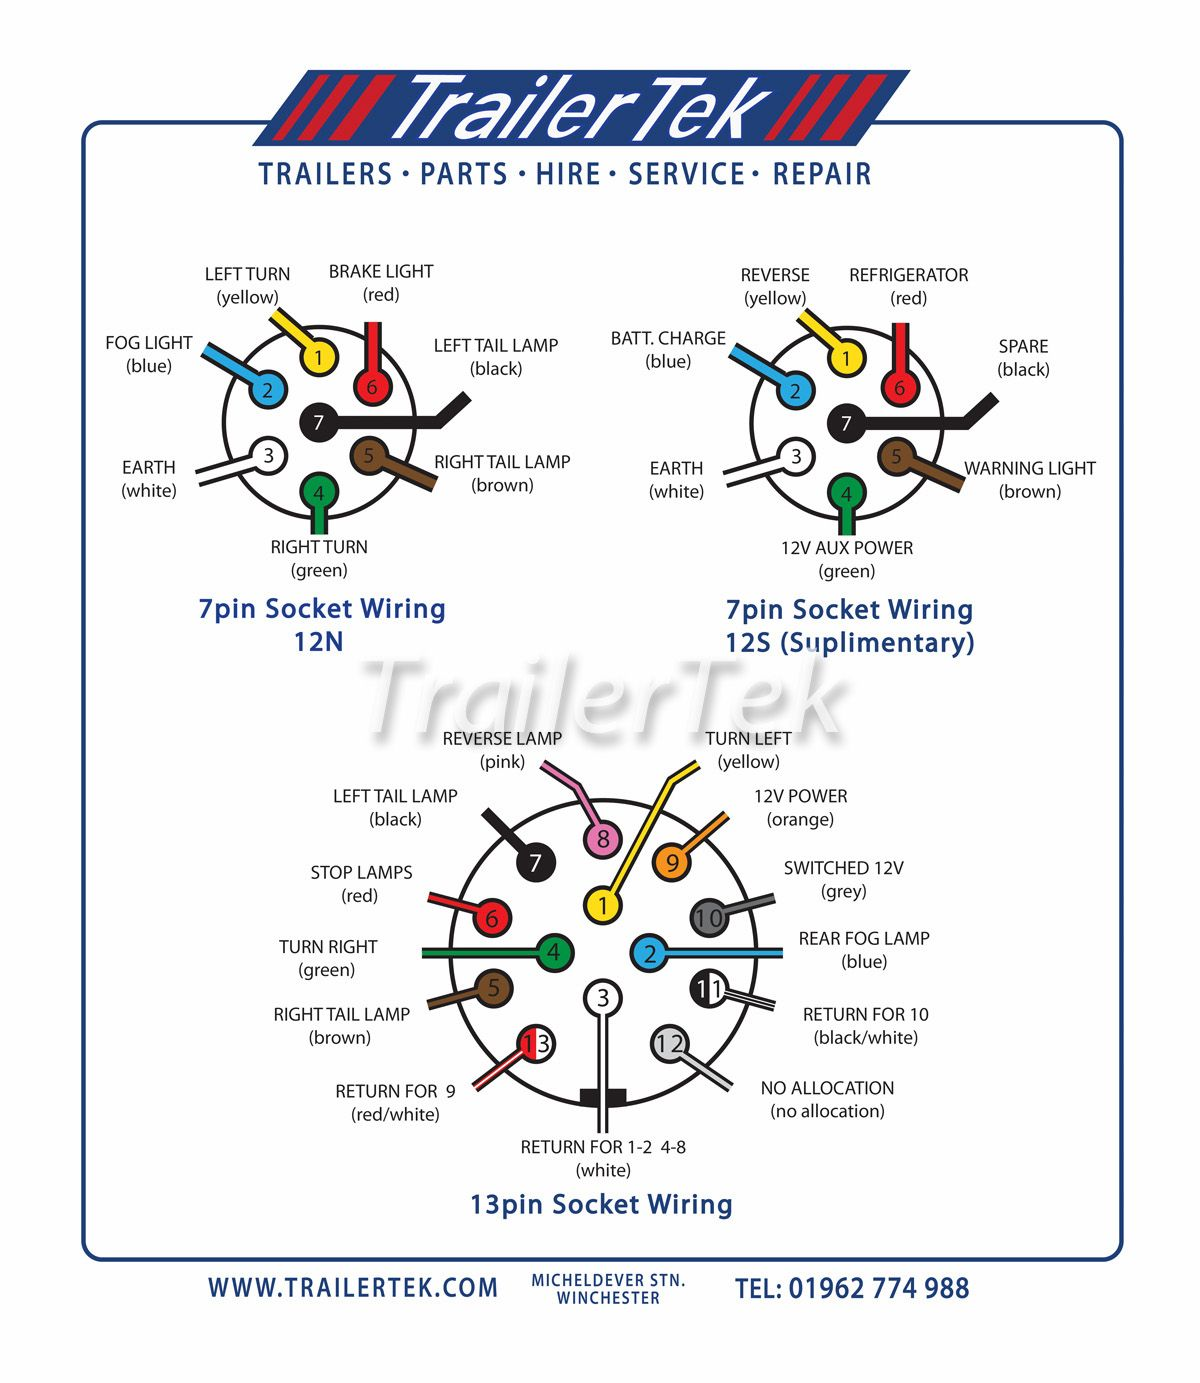 towbar fitting - trailertek trailer wiring diagram, trailer light wiring,  electrical components, electrical